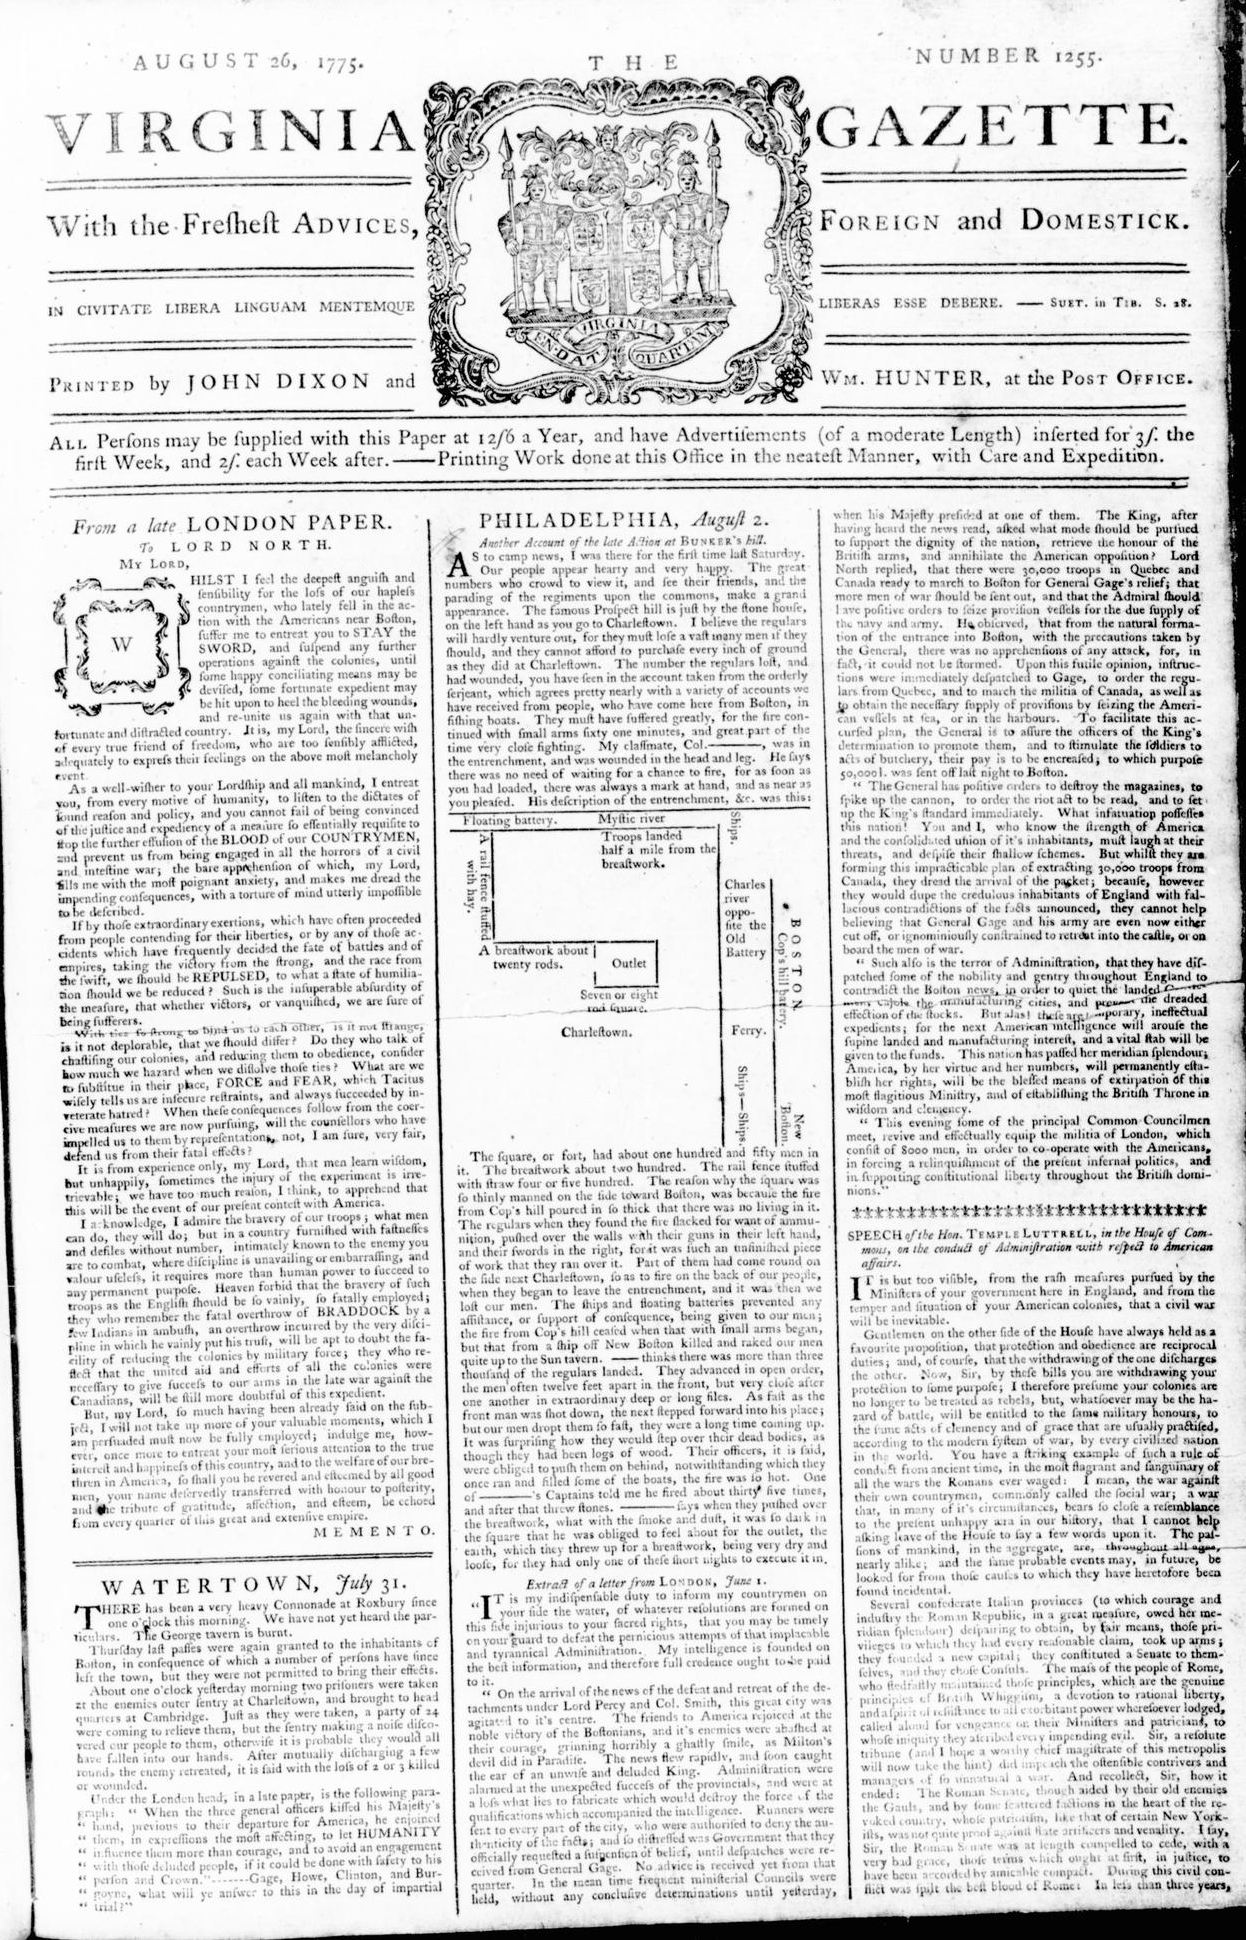 Eyewitness-Account-and-Map-of-the-Battle-of-Bunker-Hill-Virginia-Gazette-August-26-1775